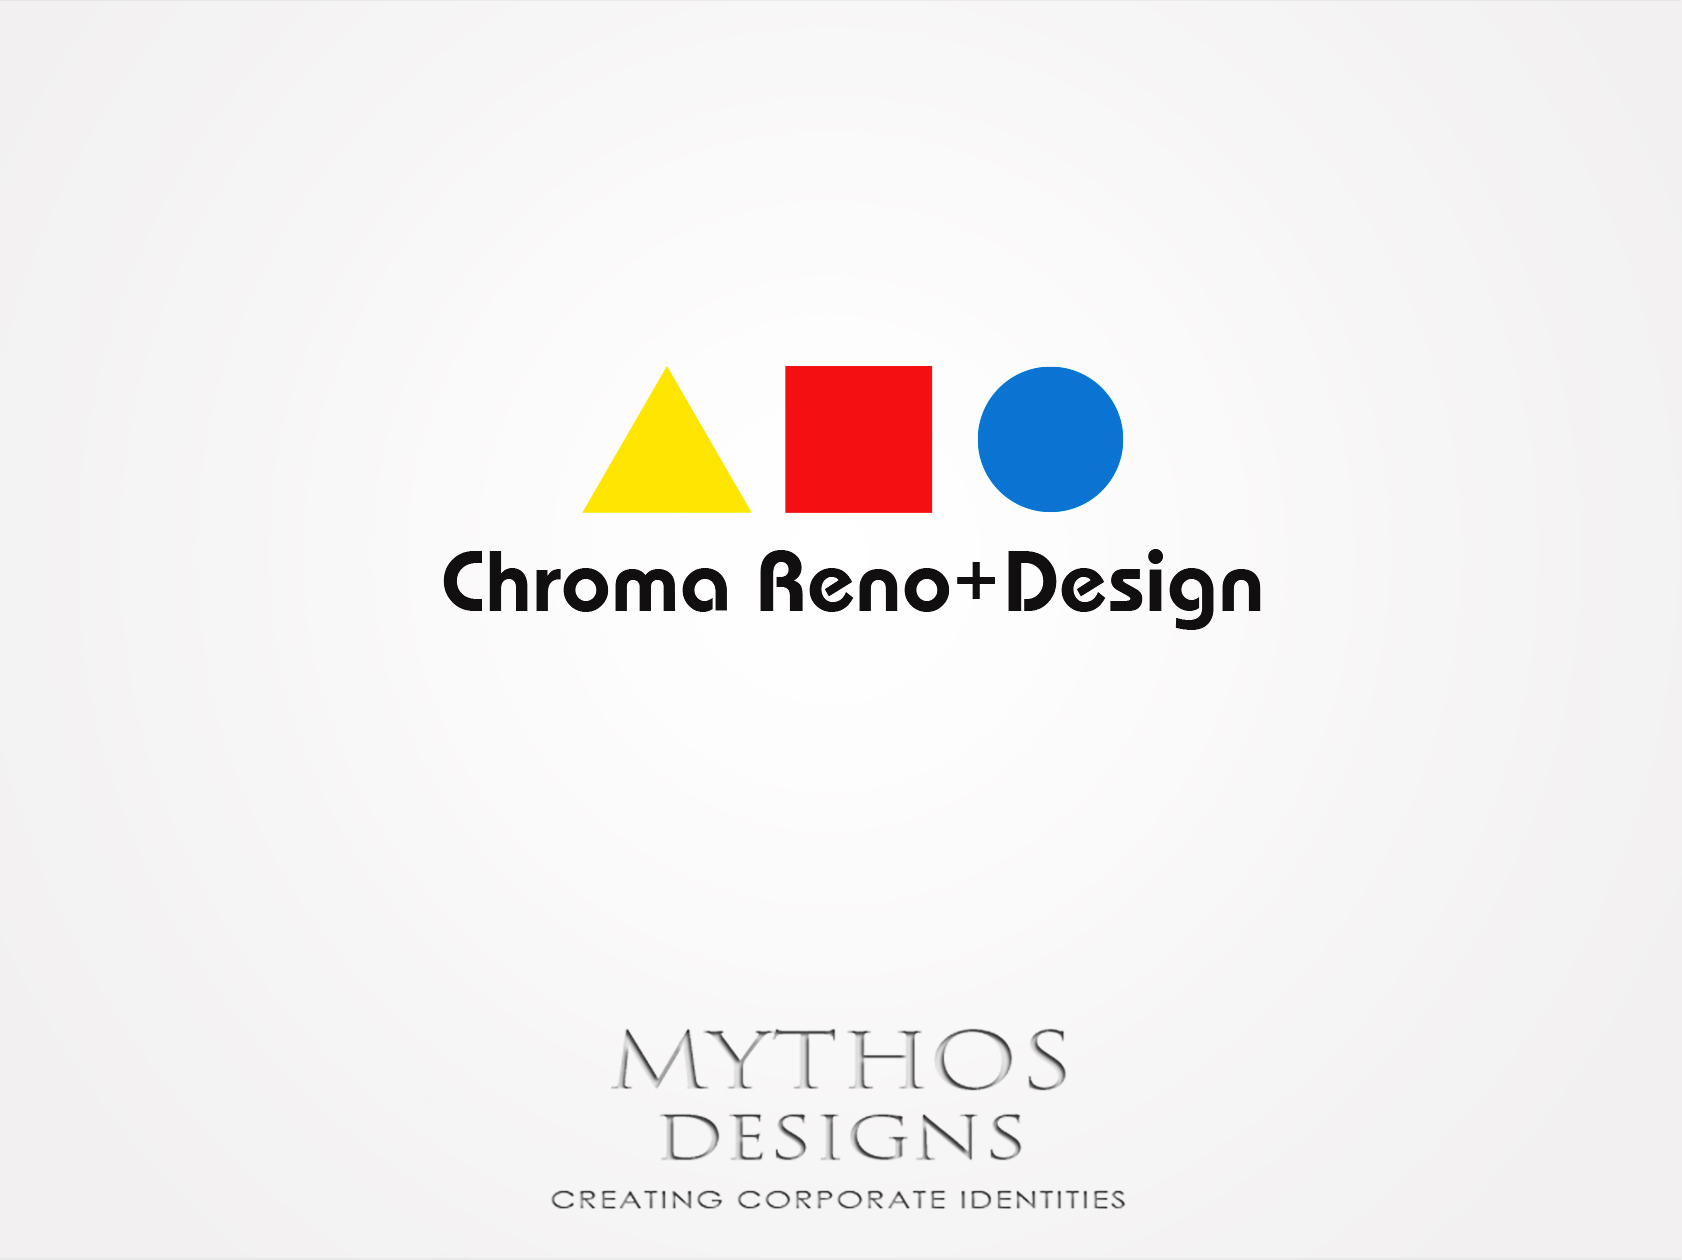 Logo Design by Mythos Designs - Entry No. 286 in the Logo Design Contest Inspiring Logo Design for Chroma Reno+Design.